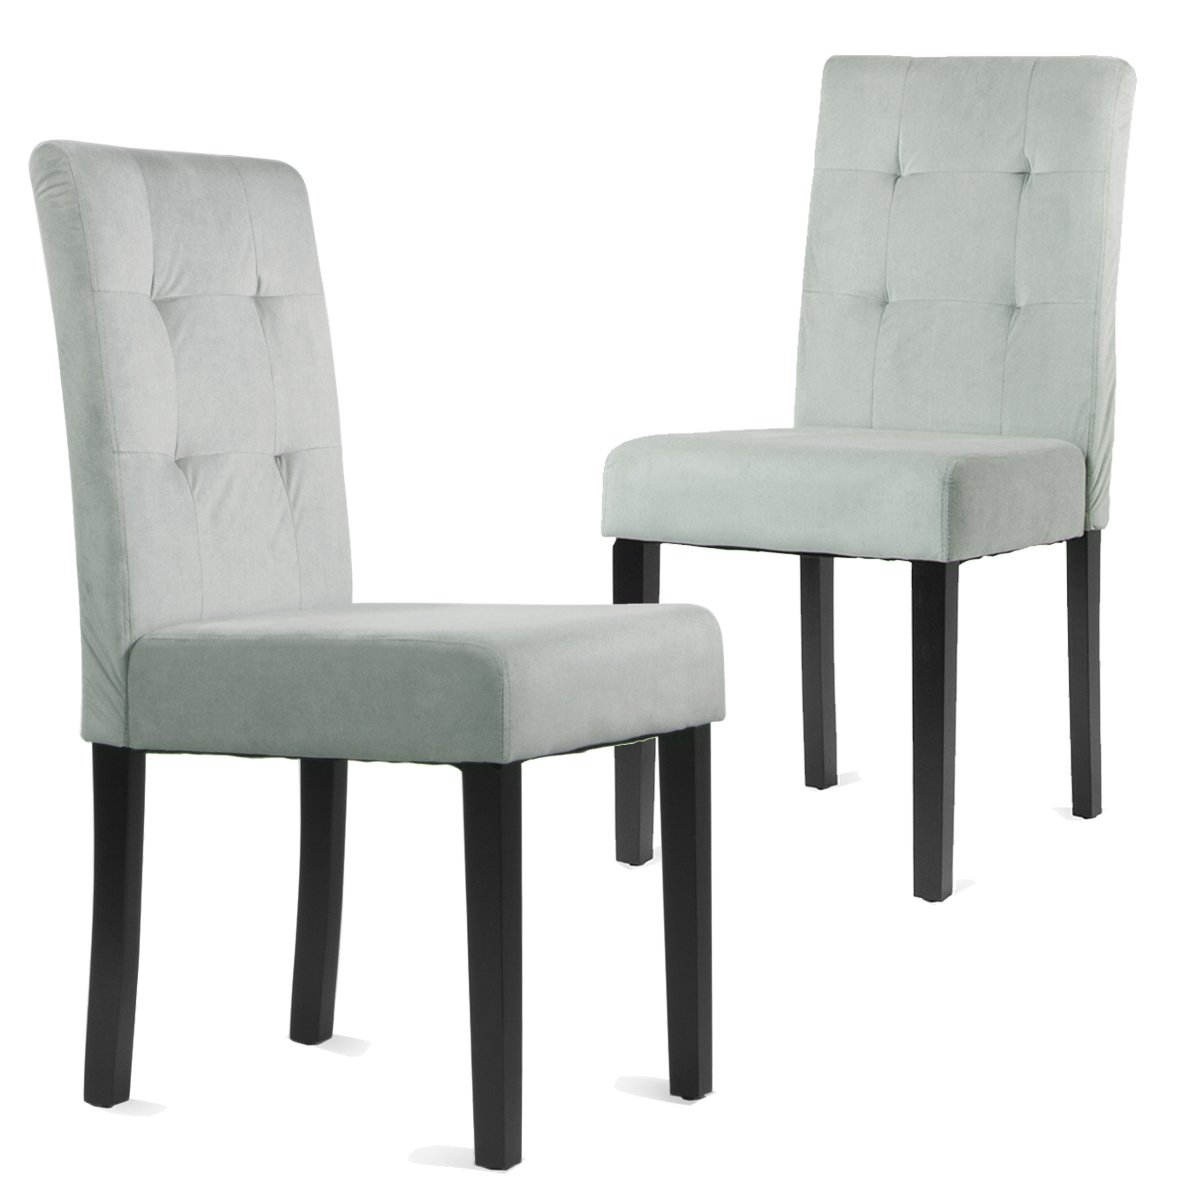 Barton Parsons Flannel Tufted Upholstered Dining Chair, Set of Two (Grey)